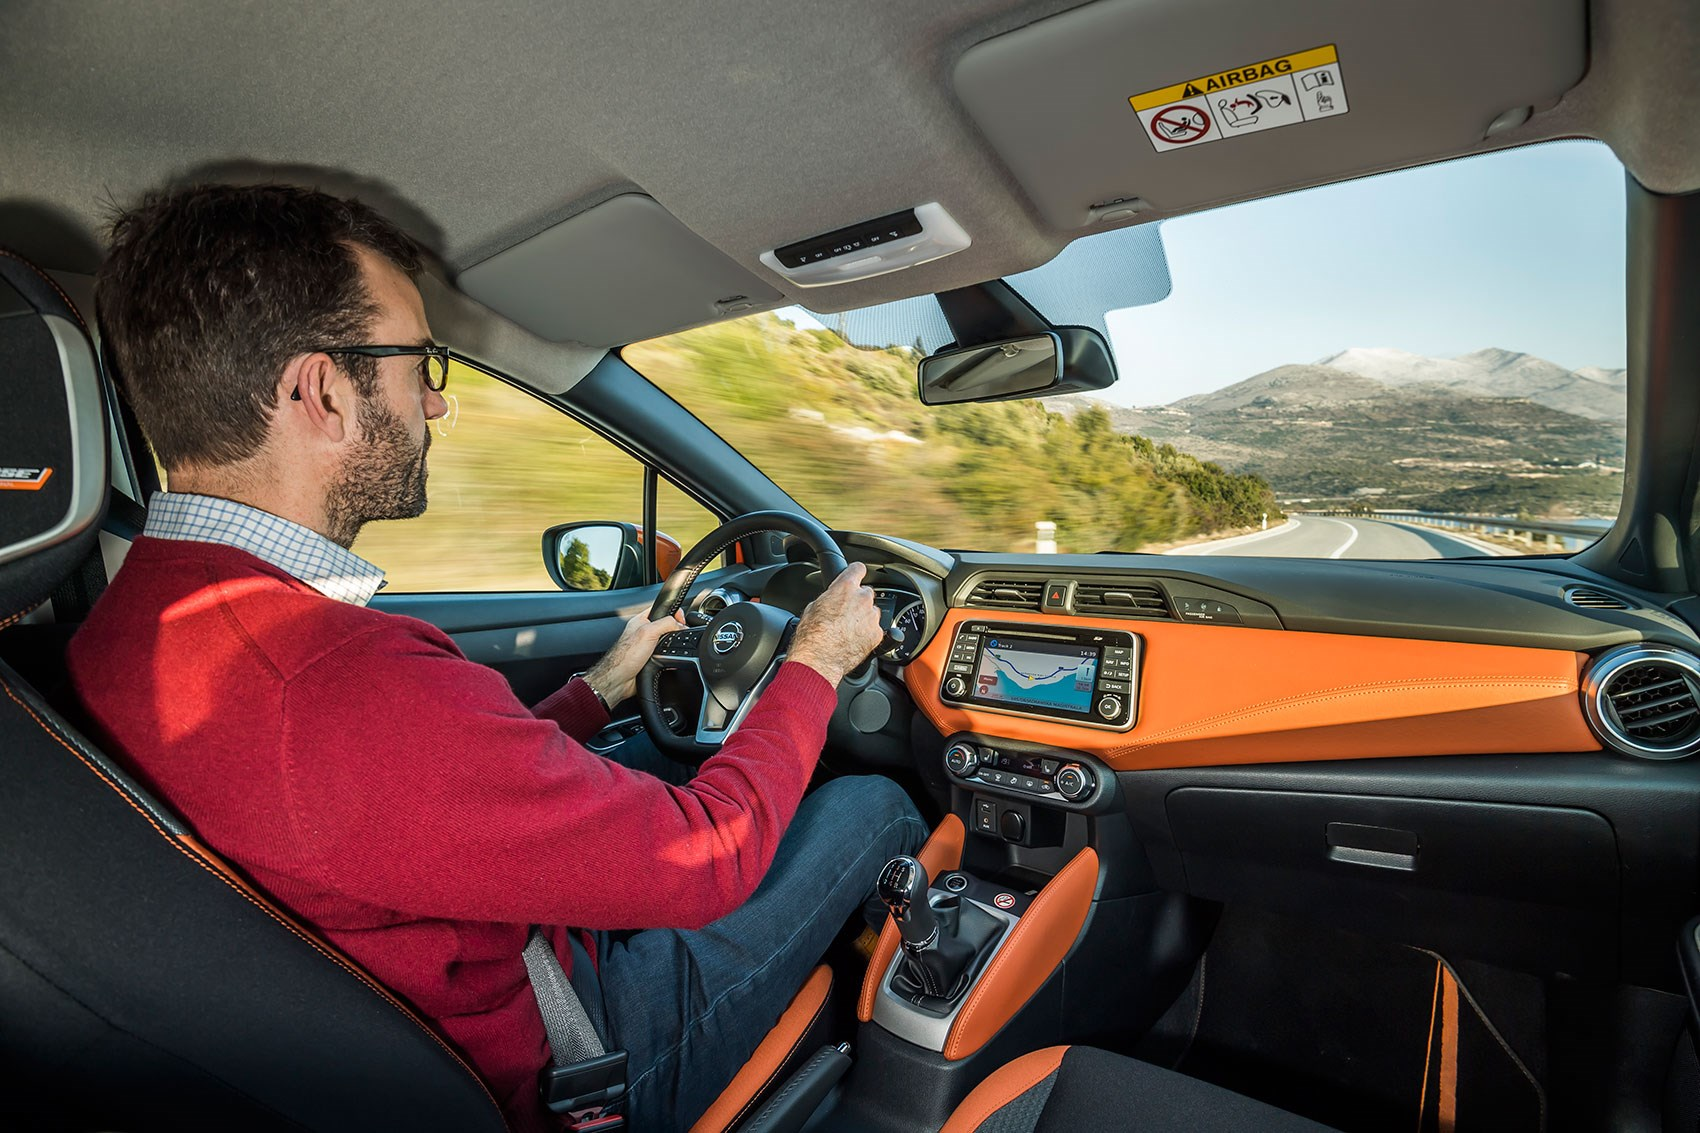 Author Tim Pollard drives the new 2017 Nissan Micra